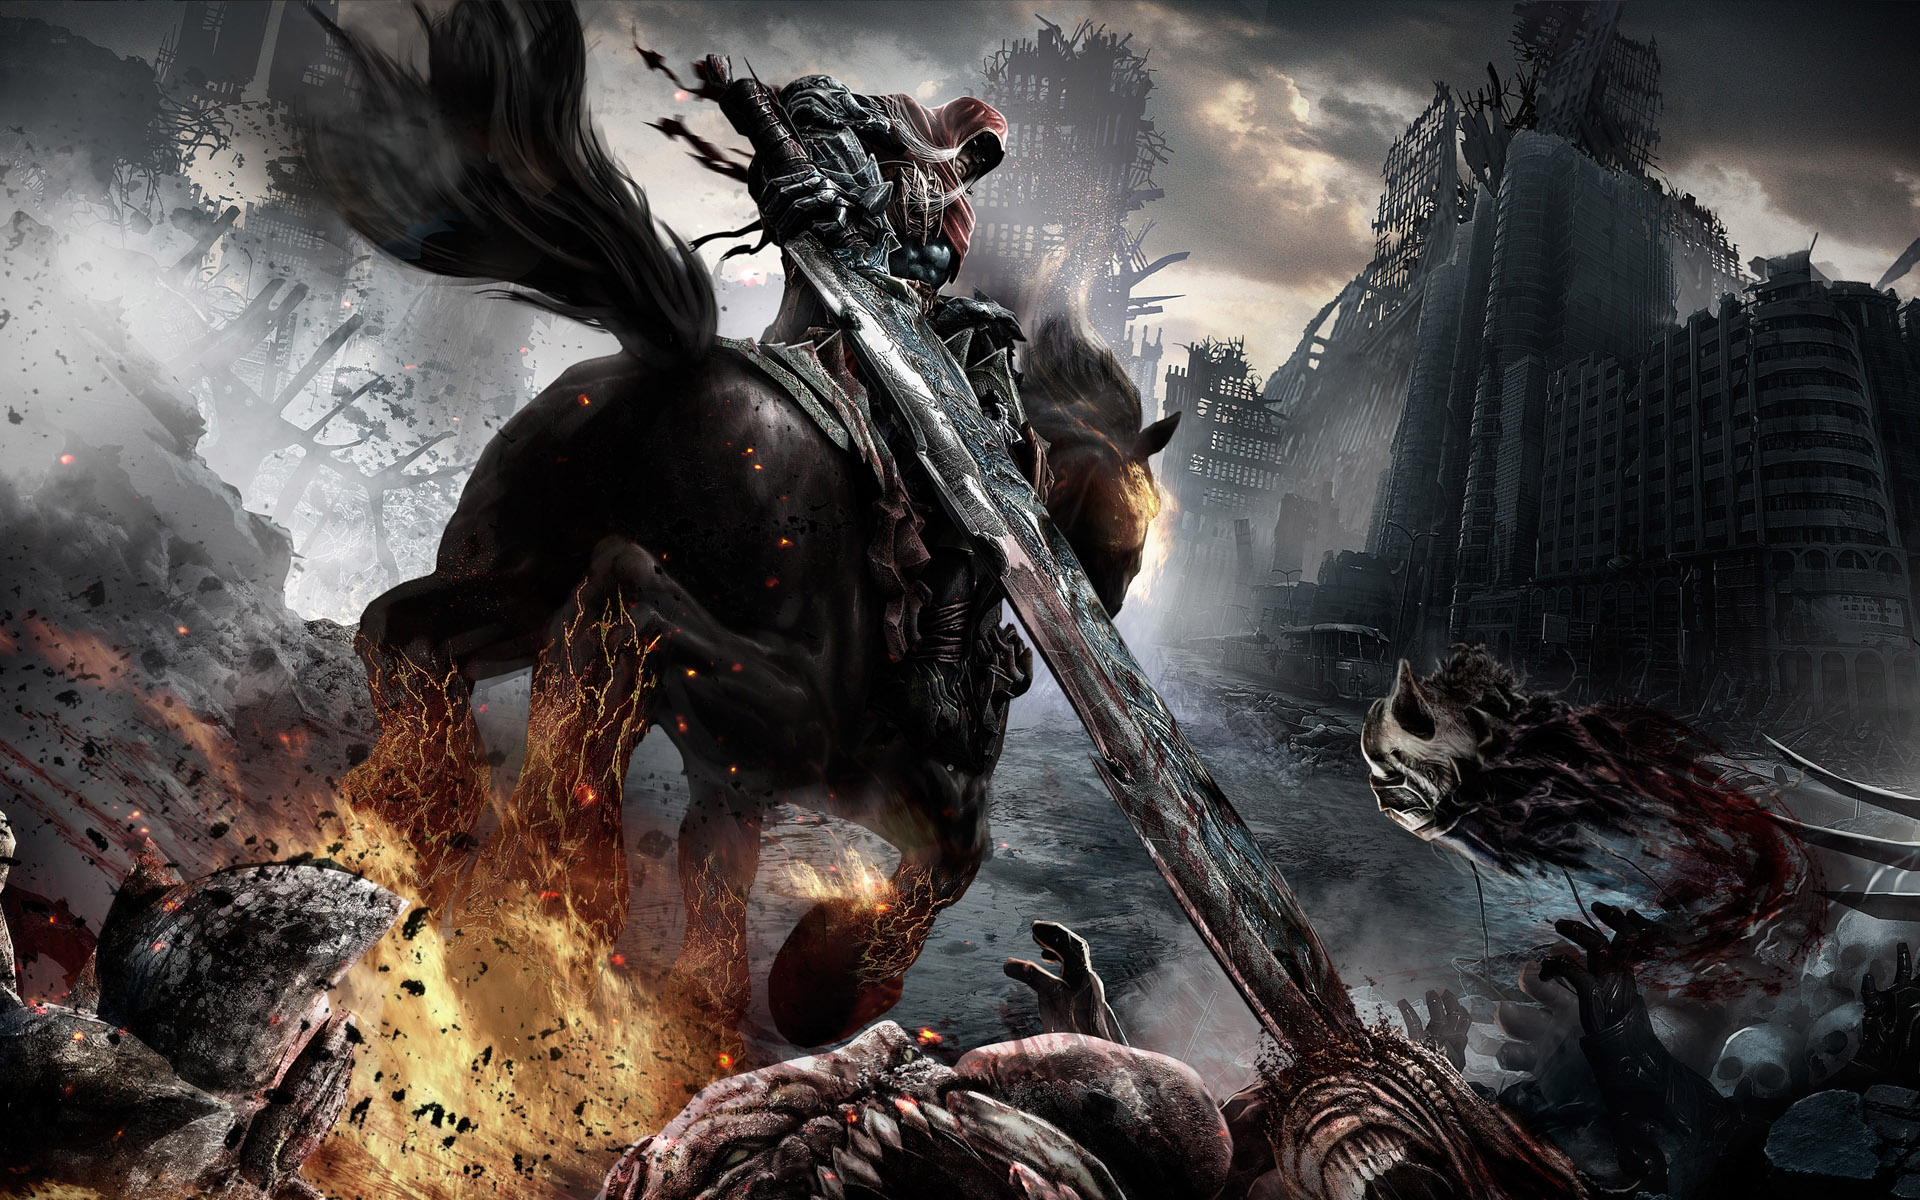 Lords Of The Fallen Wallpaper 1280x720 78973